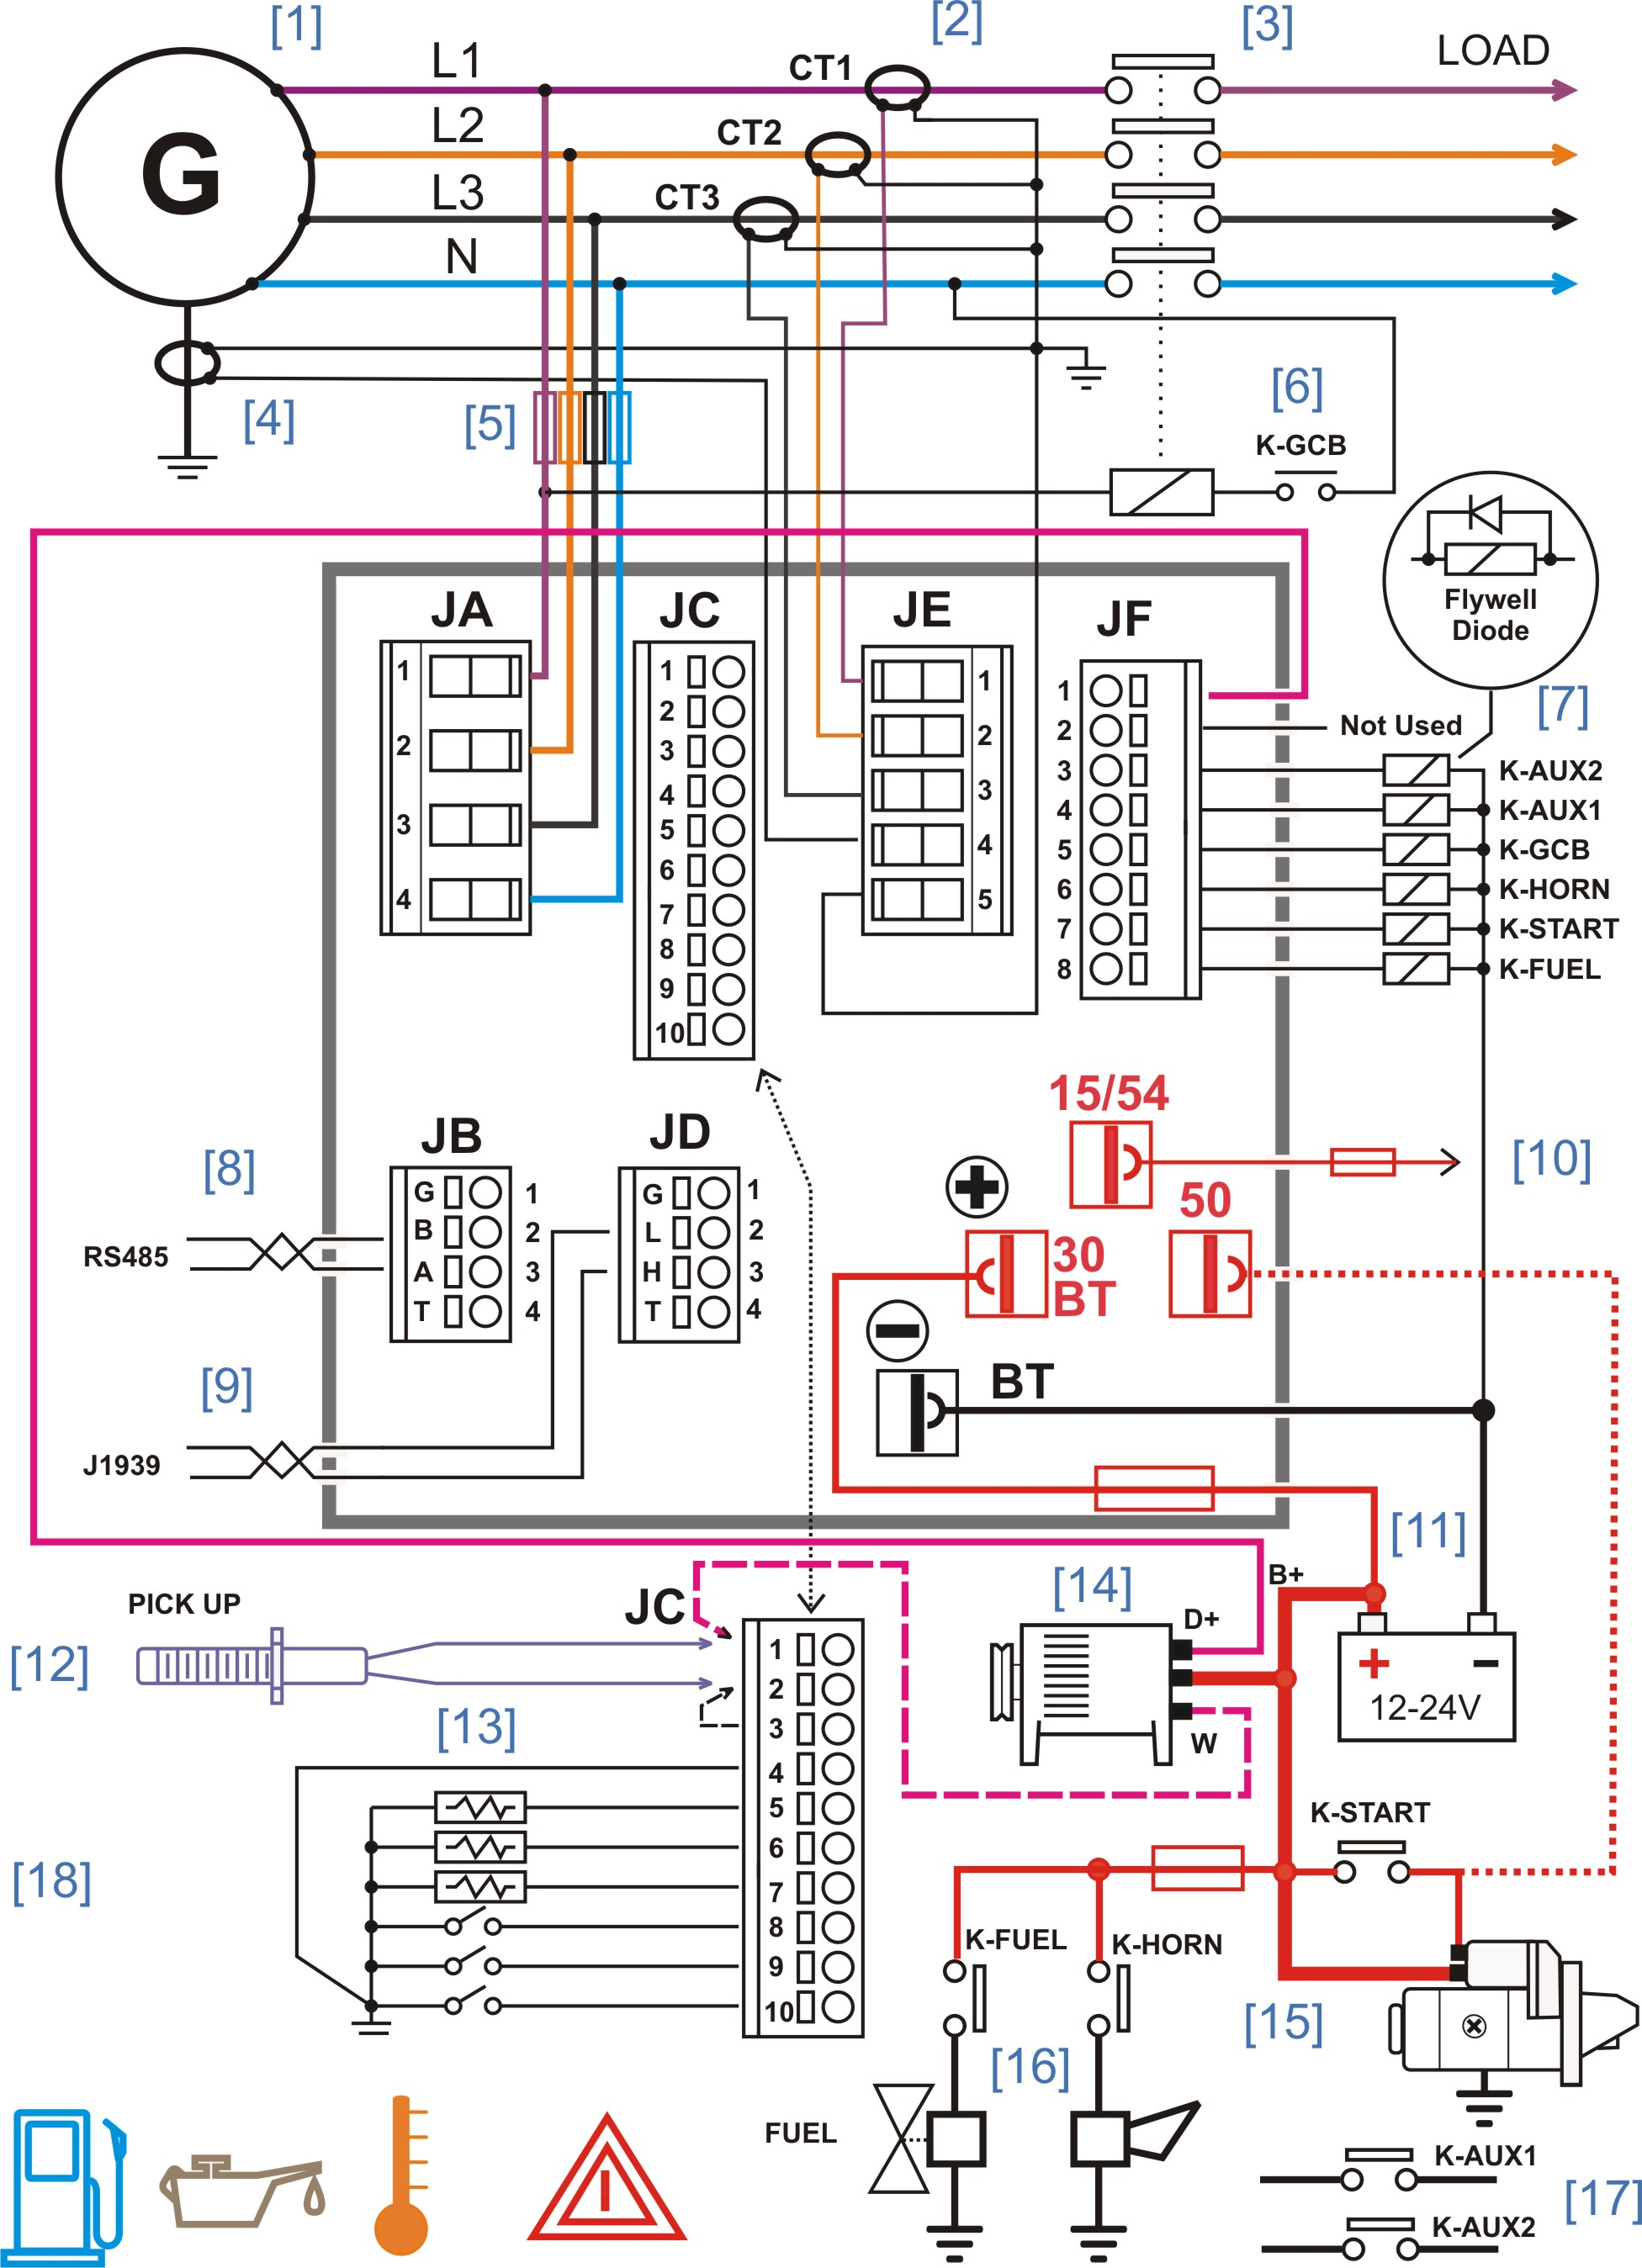 hight resolution of generator controller wiring diagram generator controllers generator engine control wiring diagram generator controller wiring diagram